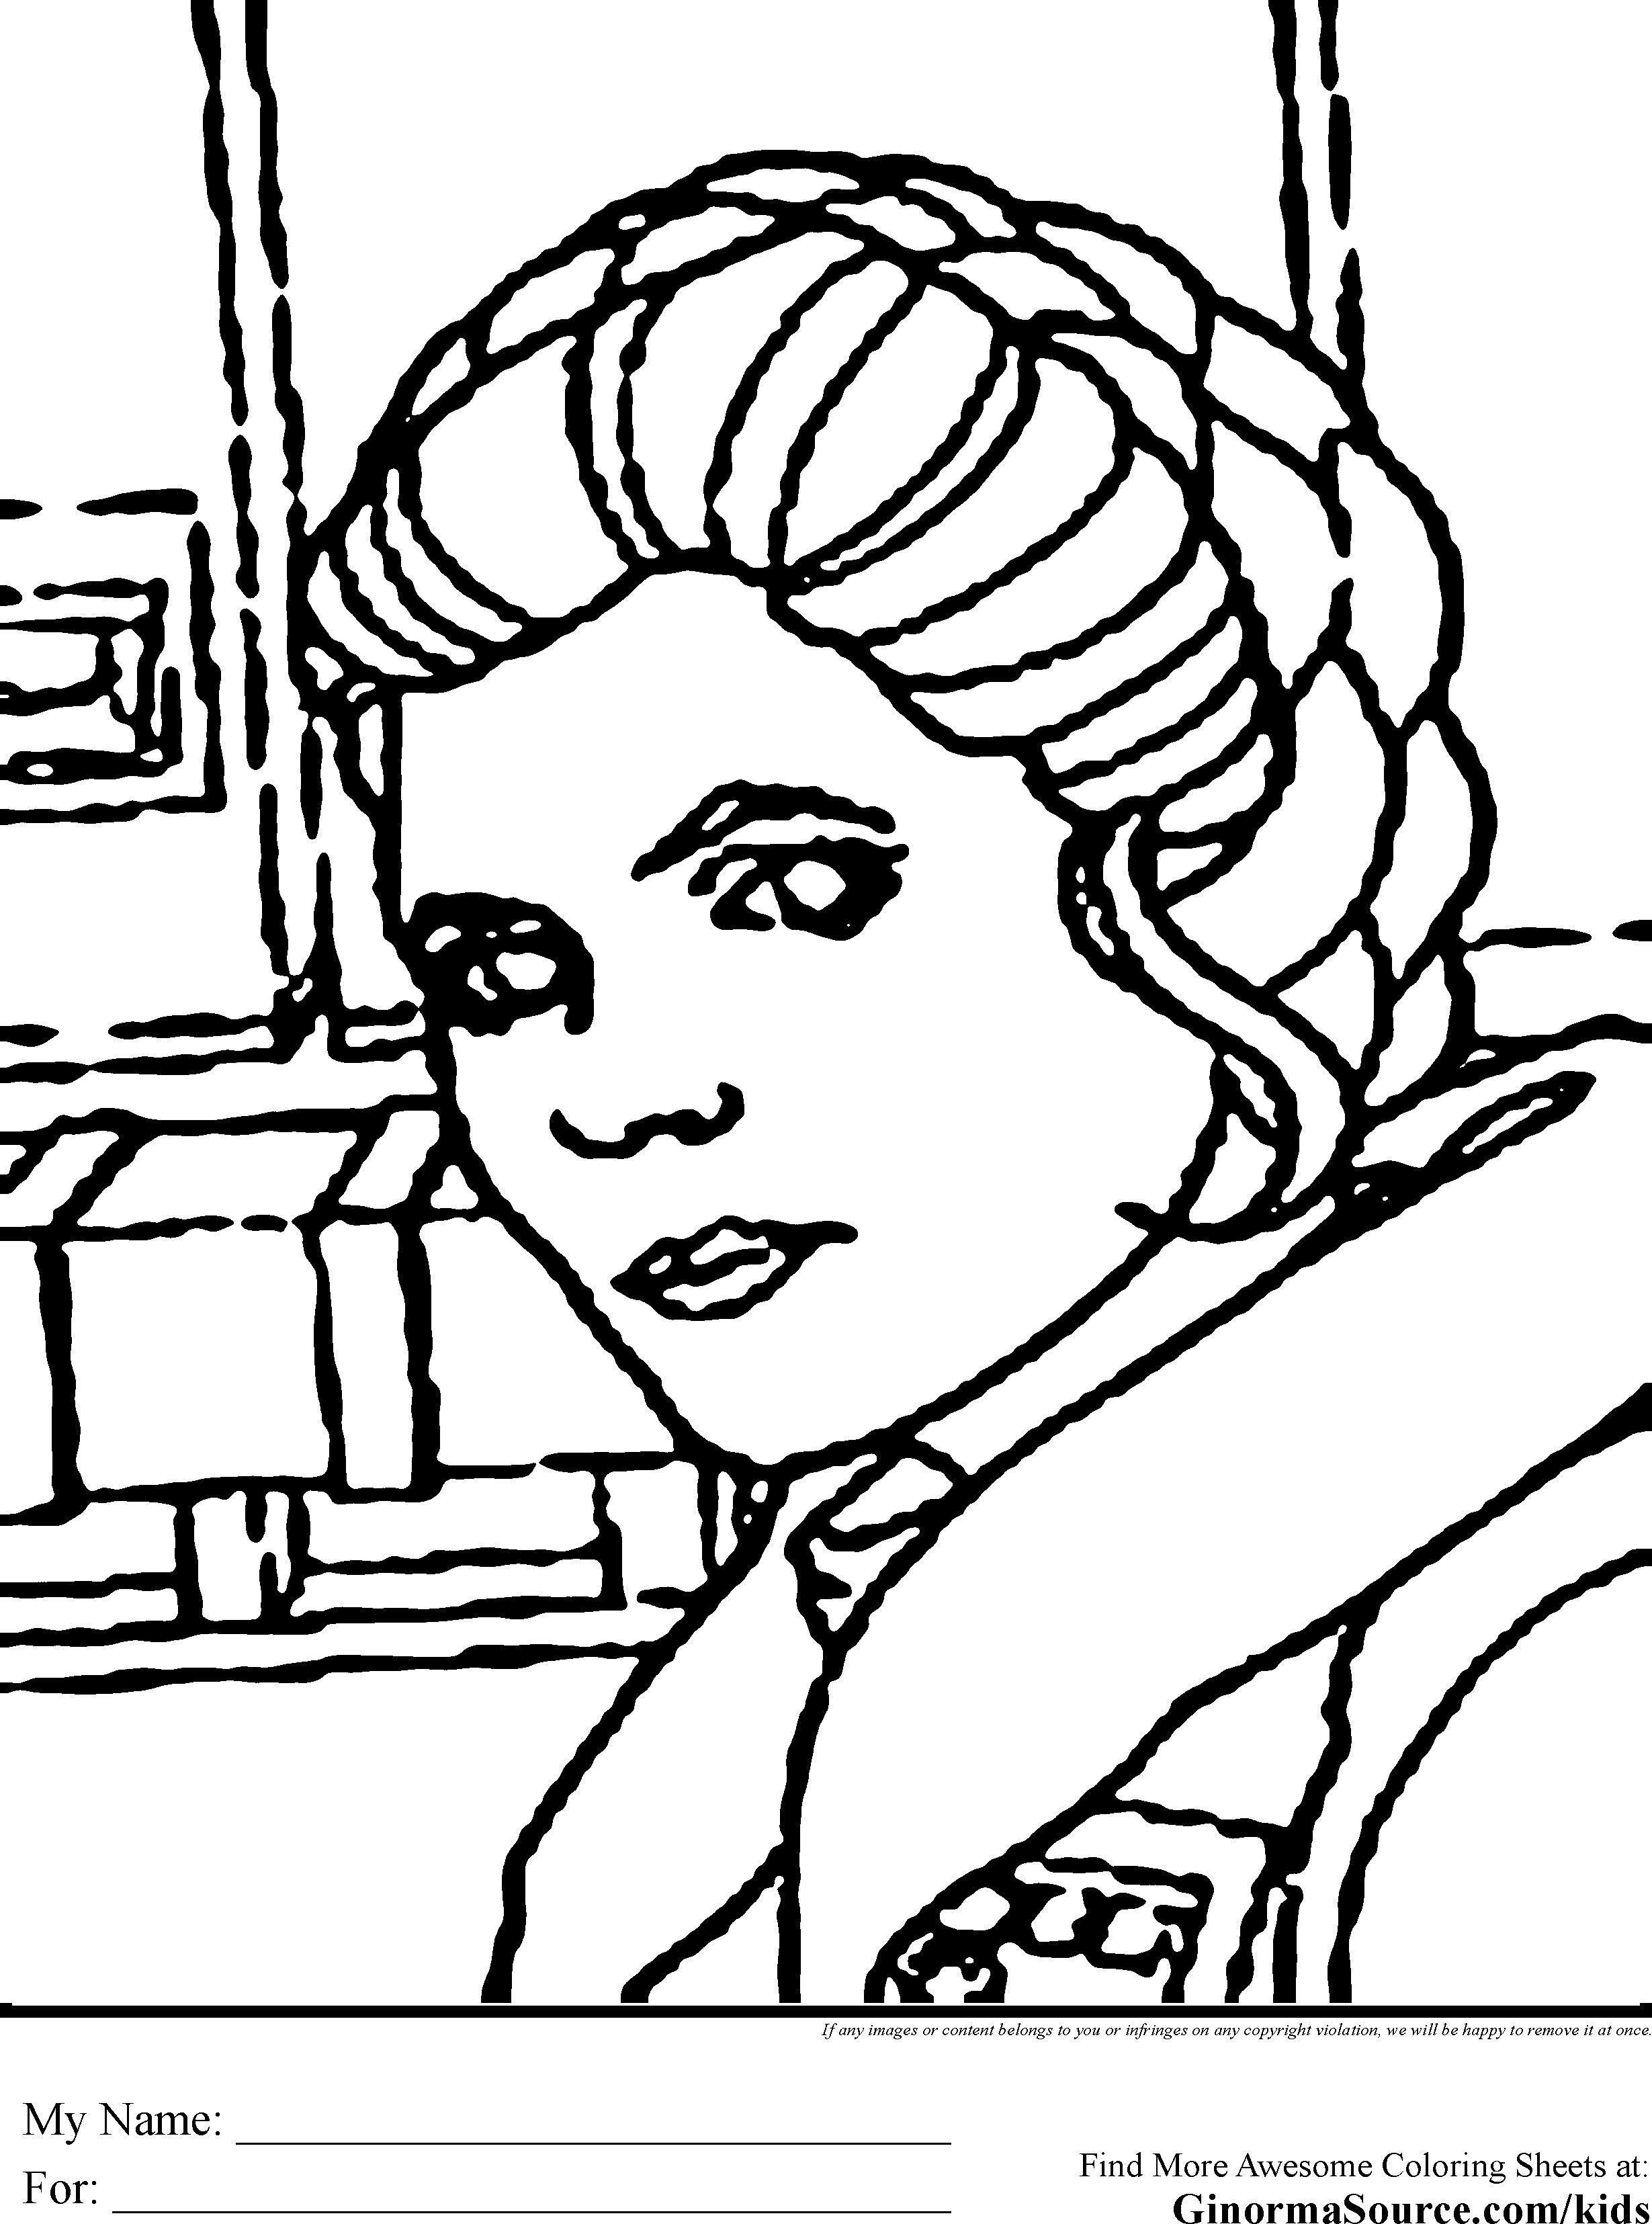 Princess Leia Coloring Pages To Print Through The Thousands Of Photographs On The Net Regardi Coloring Pages Star Wars Princess Leia Printable Coloring Pages